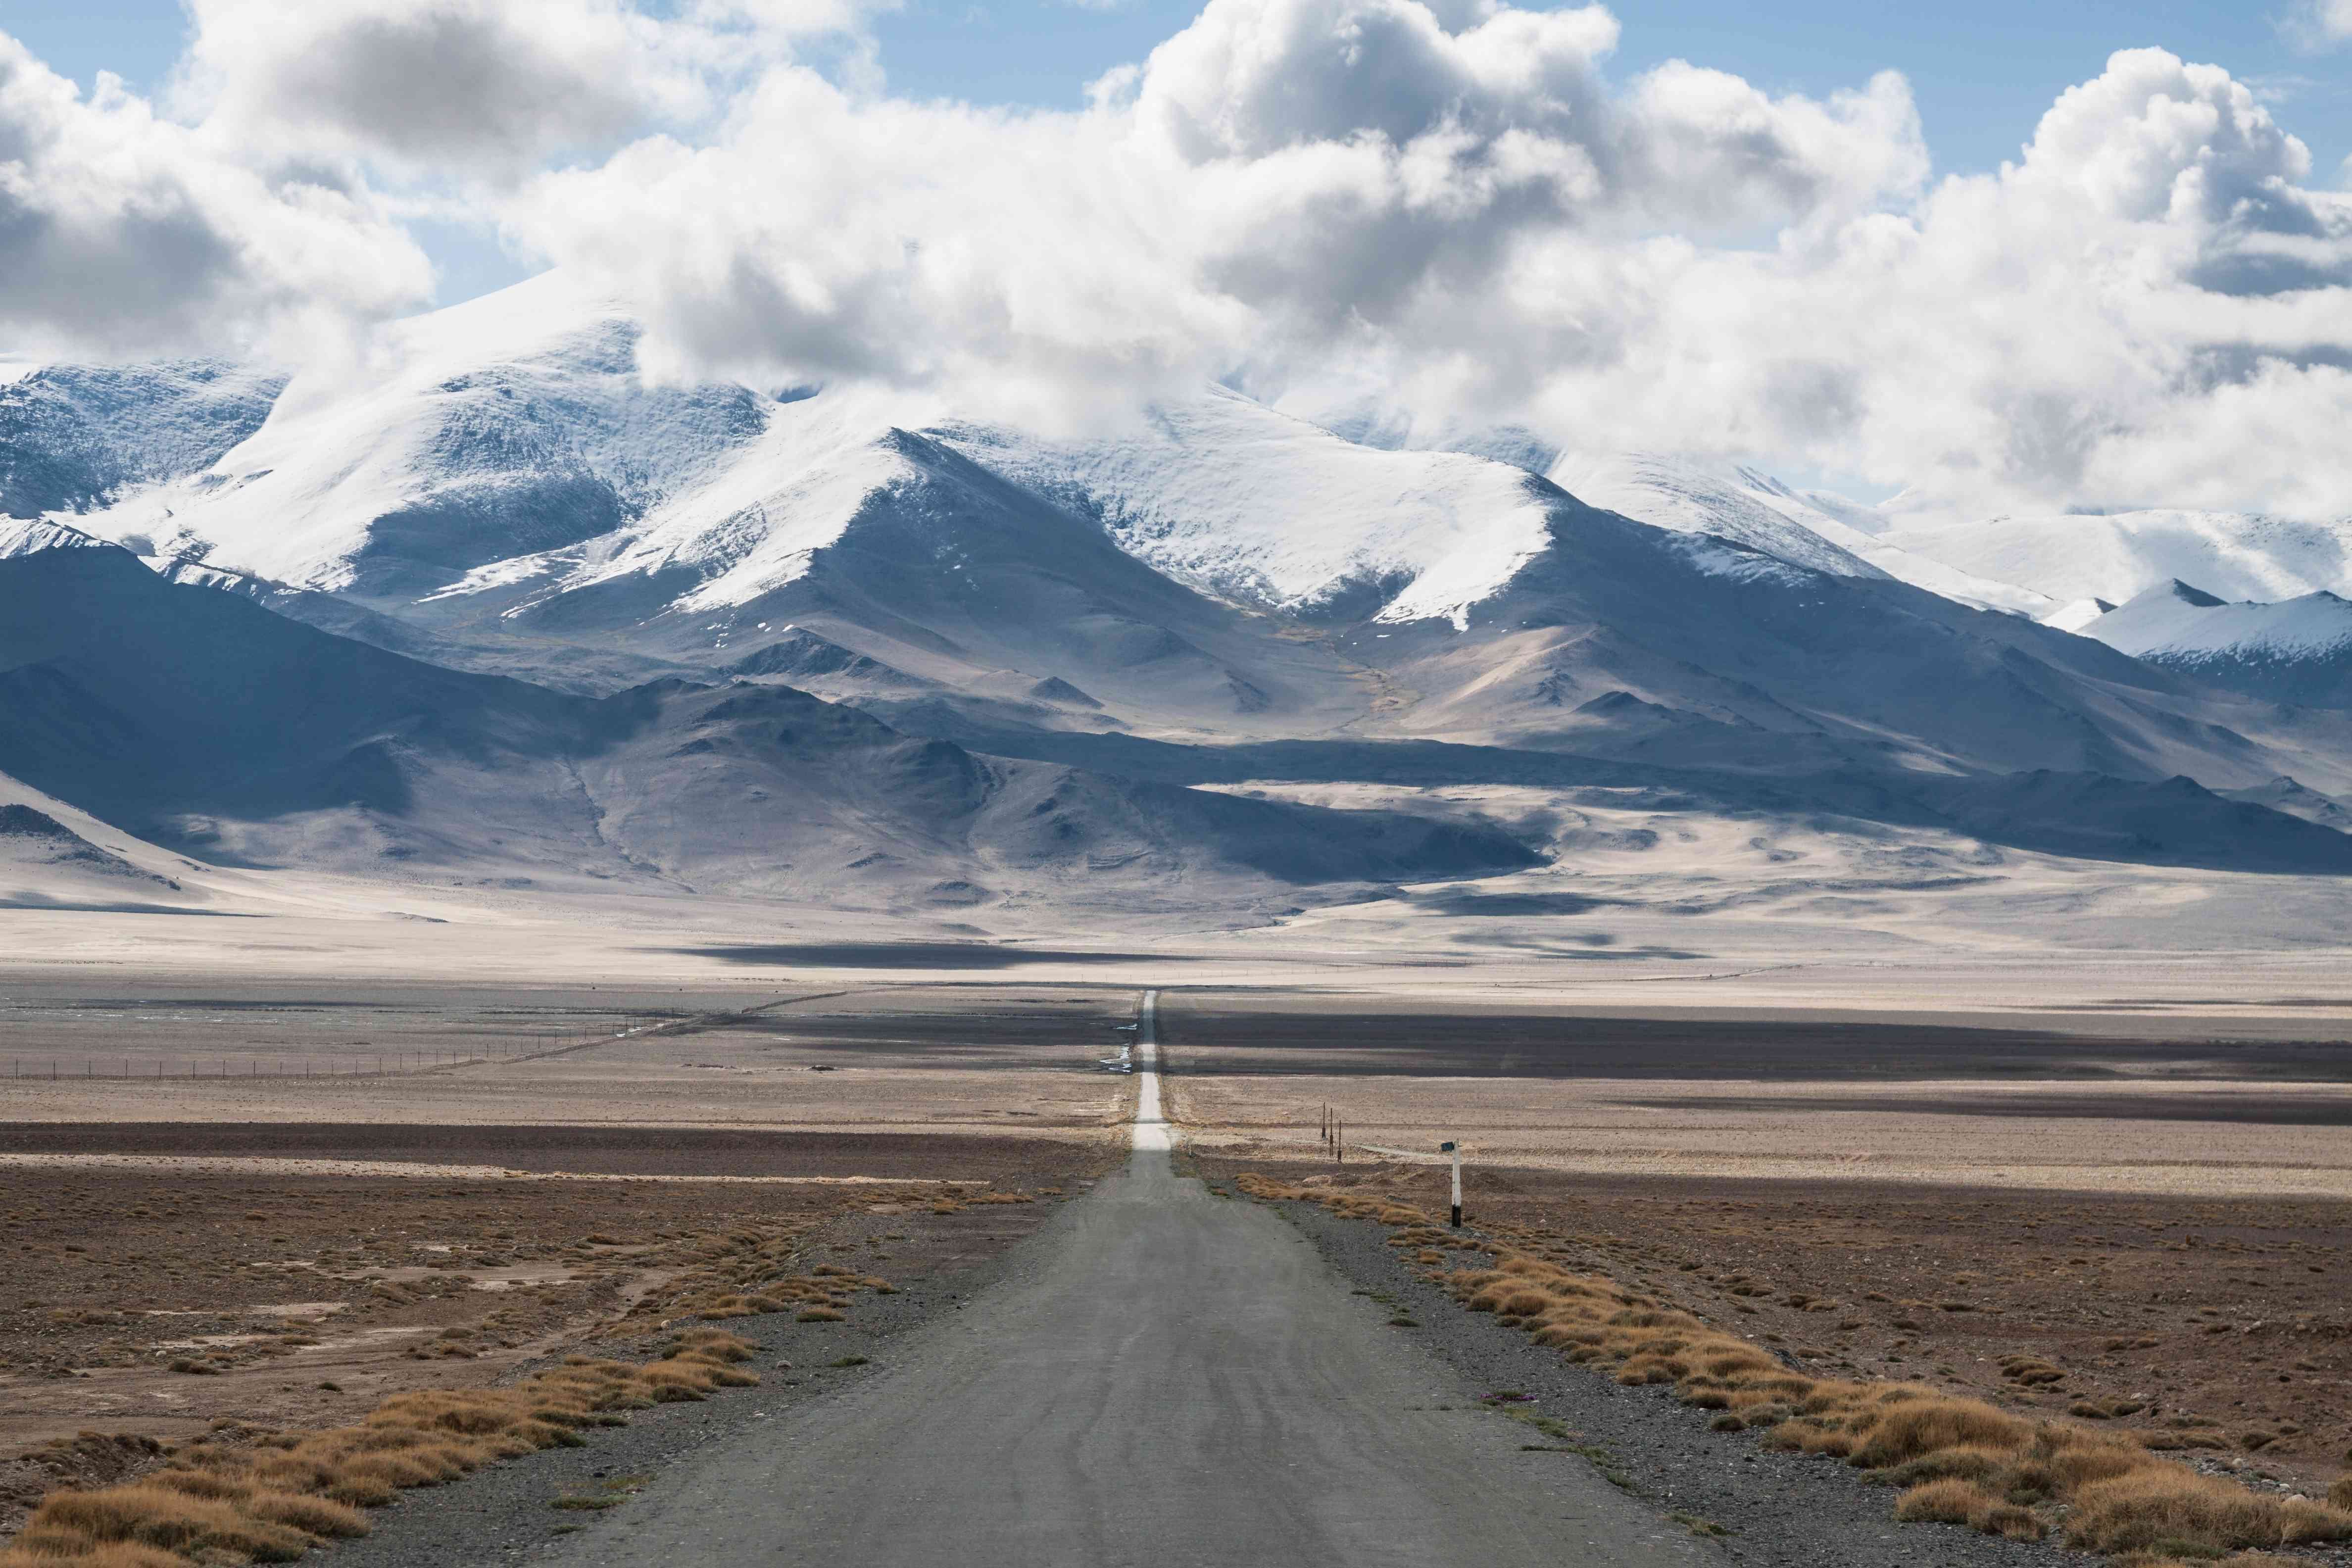 Pamir Highway in Tajikistan with the Pamir Mountains looming in the background